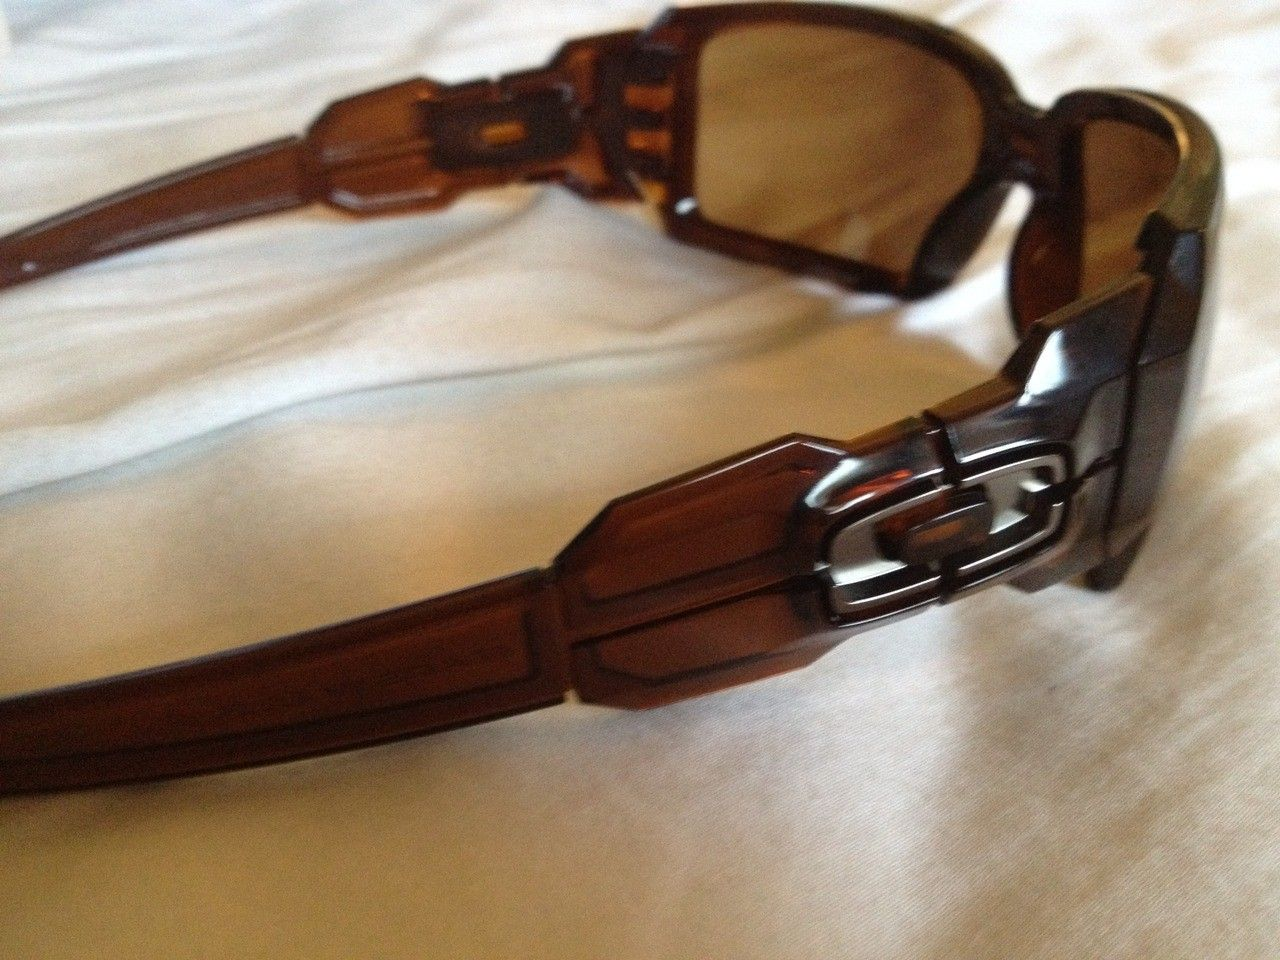 WTS/WTT: Oakley Bronze Oil Drum NEED TO SELL! - tumblr_mch1pwFXWR1rbptugo2_1280.jpg